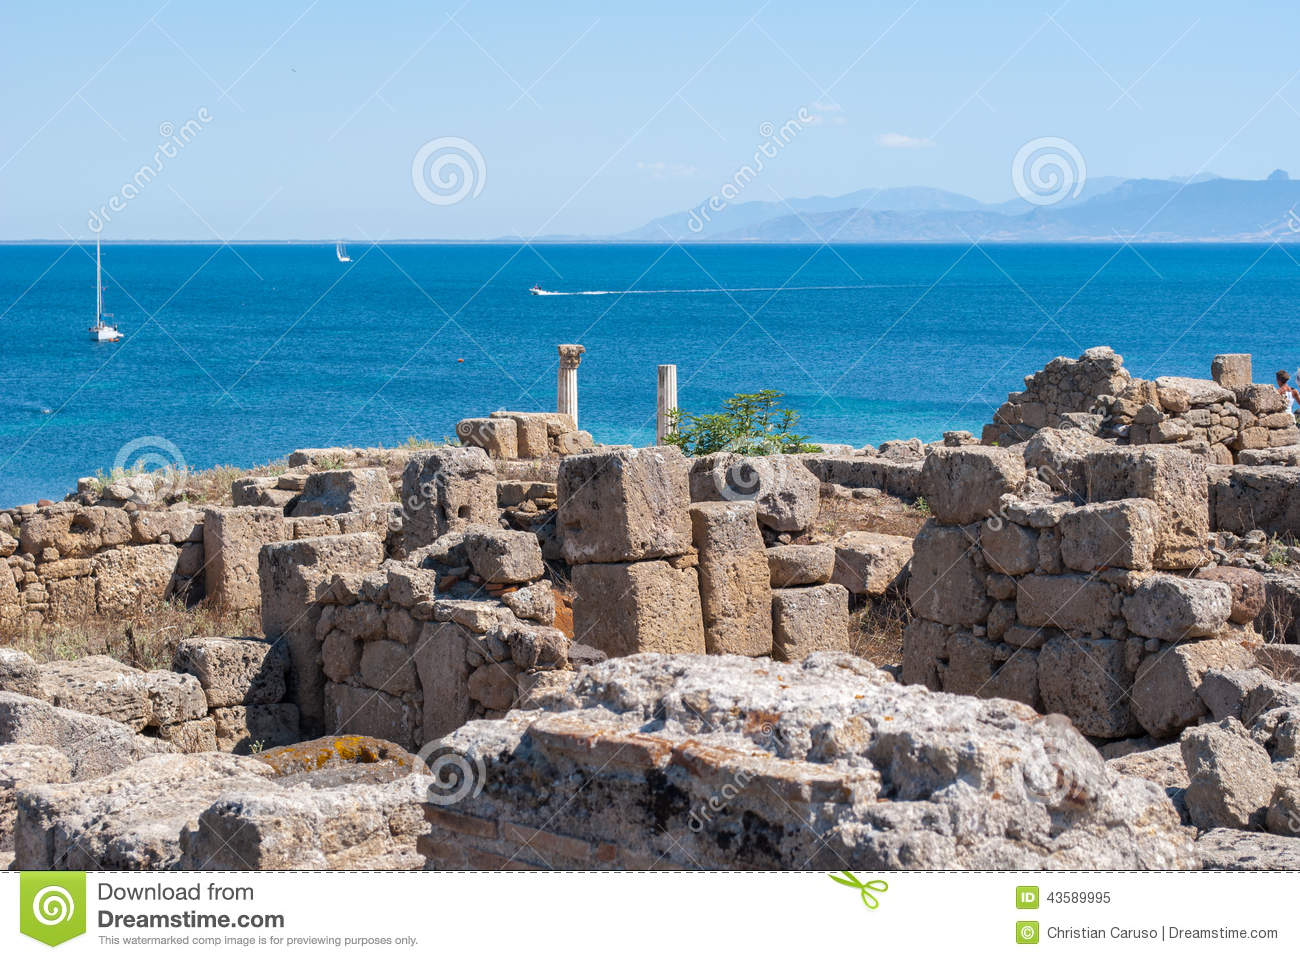 christian singles in sardinia Up to the present time only one christian cemetery is known but did not obtain control of it sardinia, moreover catholic online singles safe.